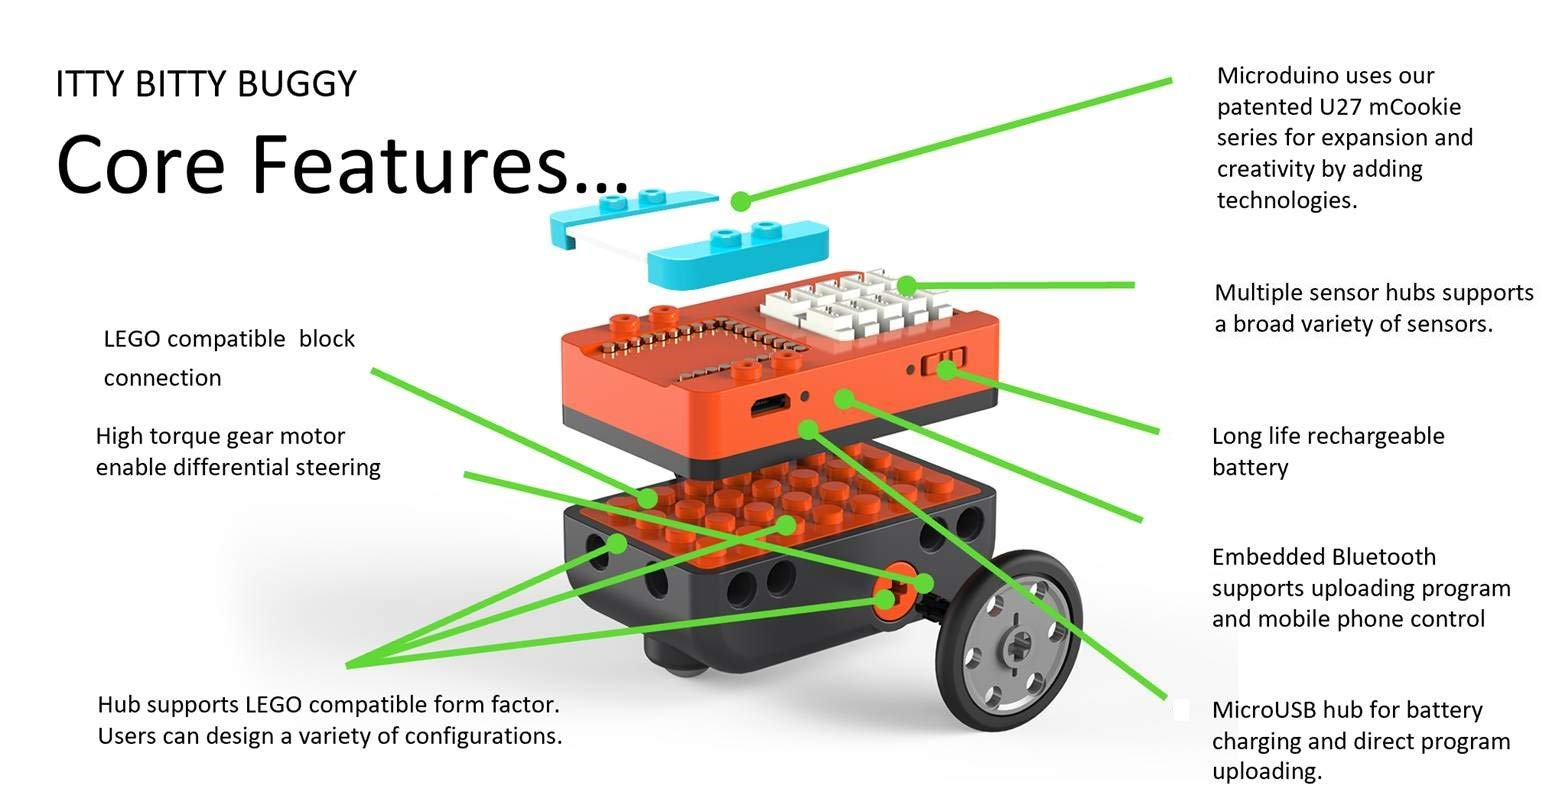 Microduino Itty Bitty Buggy DIY 5-in-1 Programmable Robot STEM Education Toy for Boys and Girls Age 8+ Learn Coding, Robotics and Electronics by Microduino (Image #4)